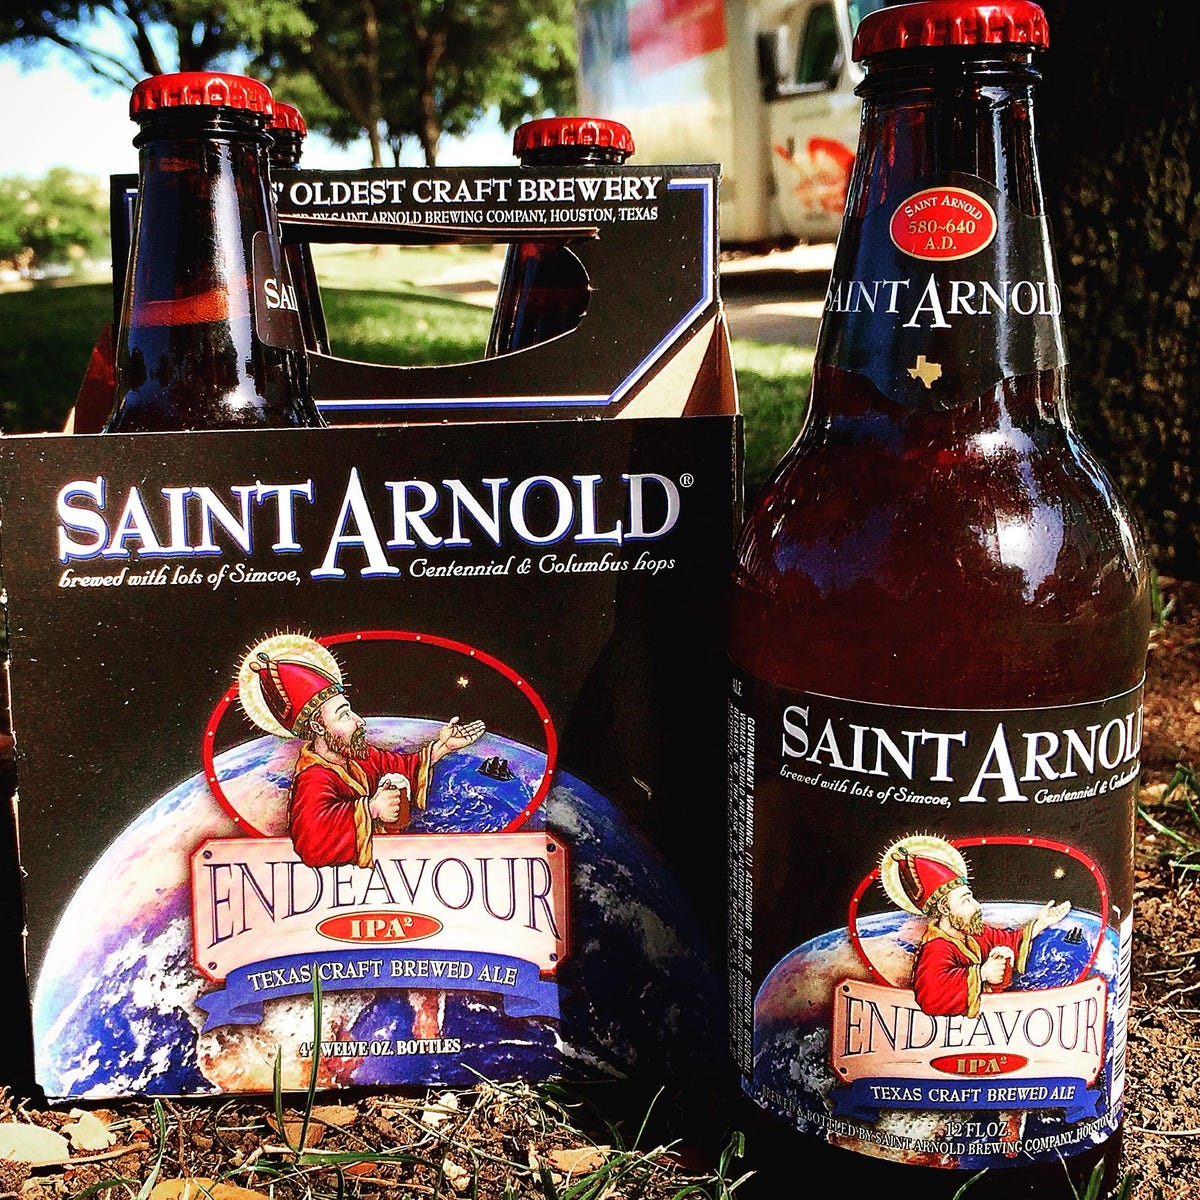 4 patriotic craft beers Captain America would proudly serve